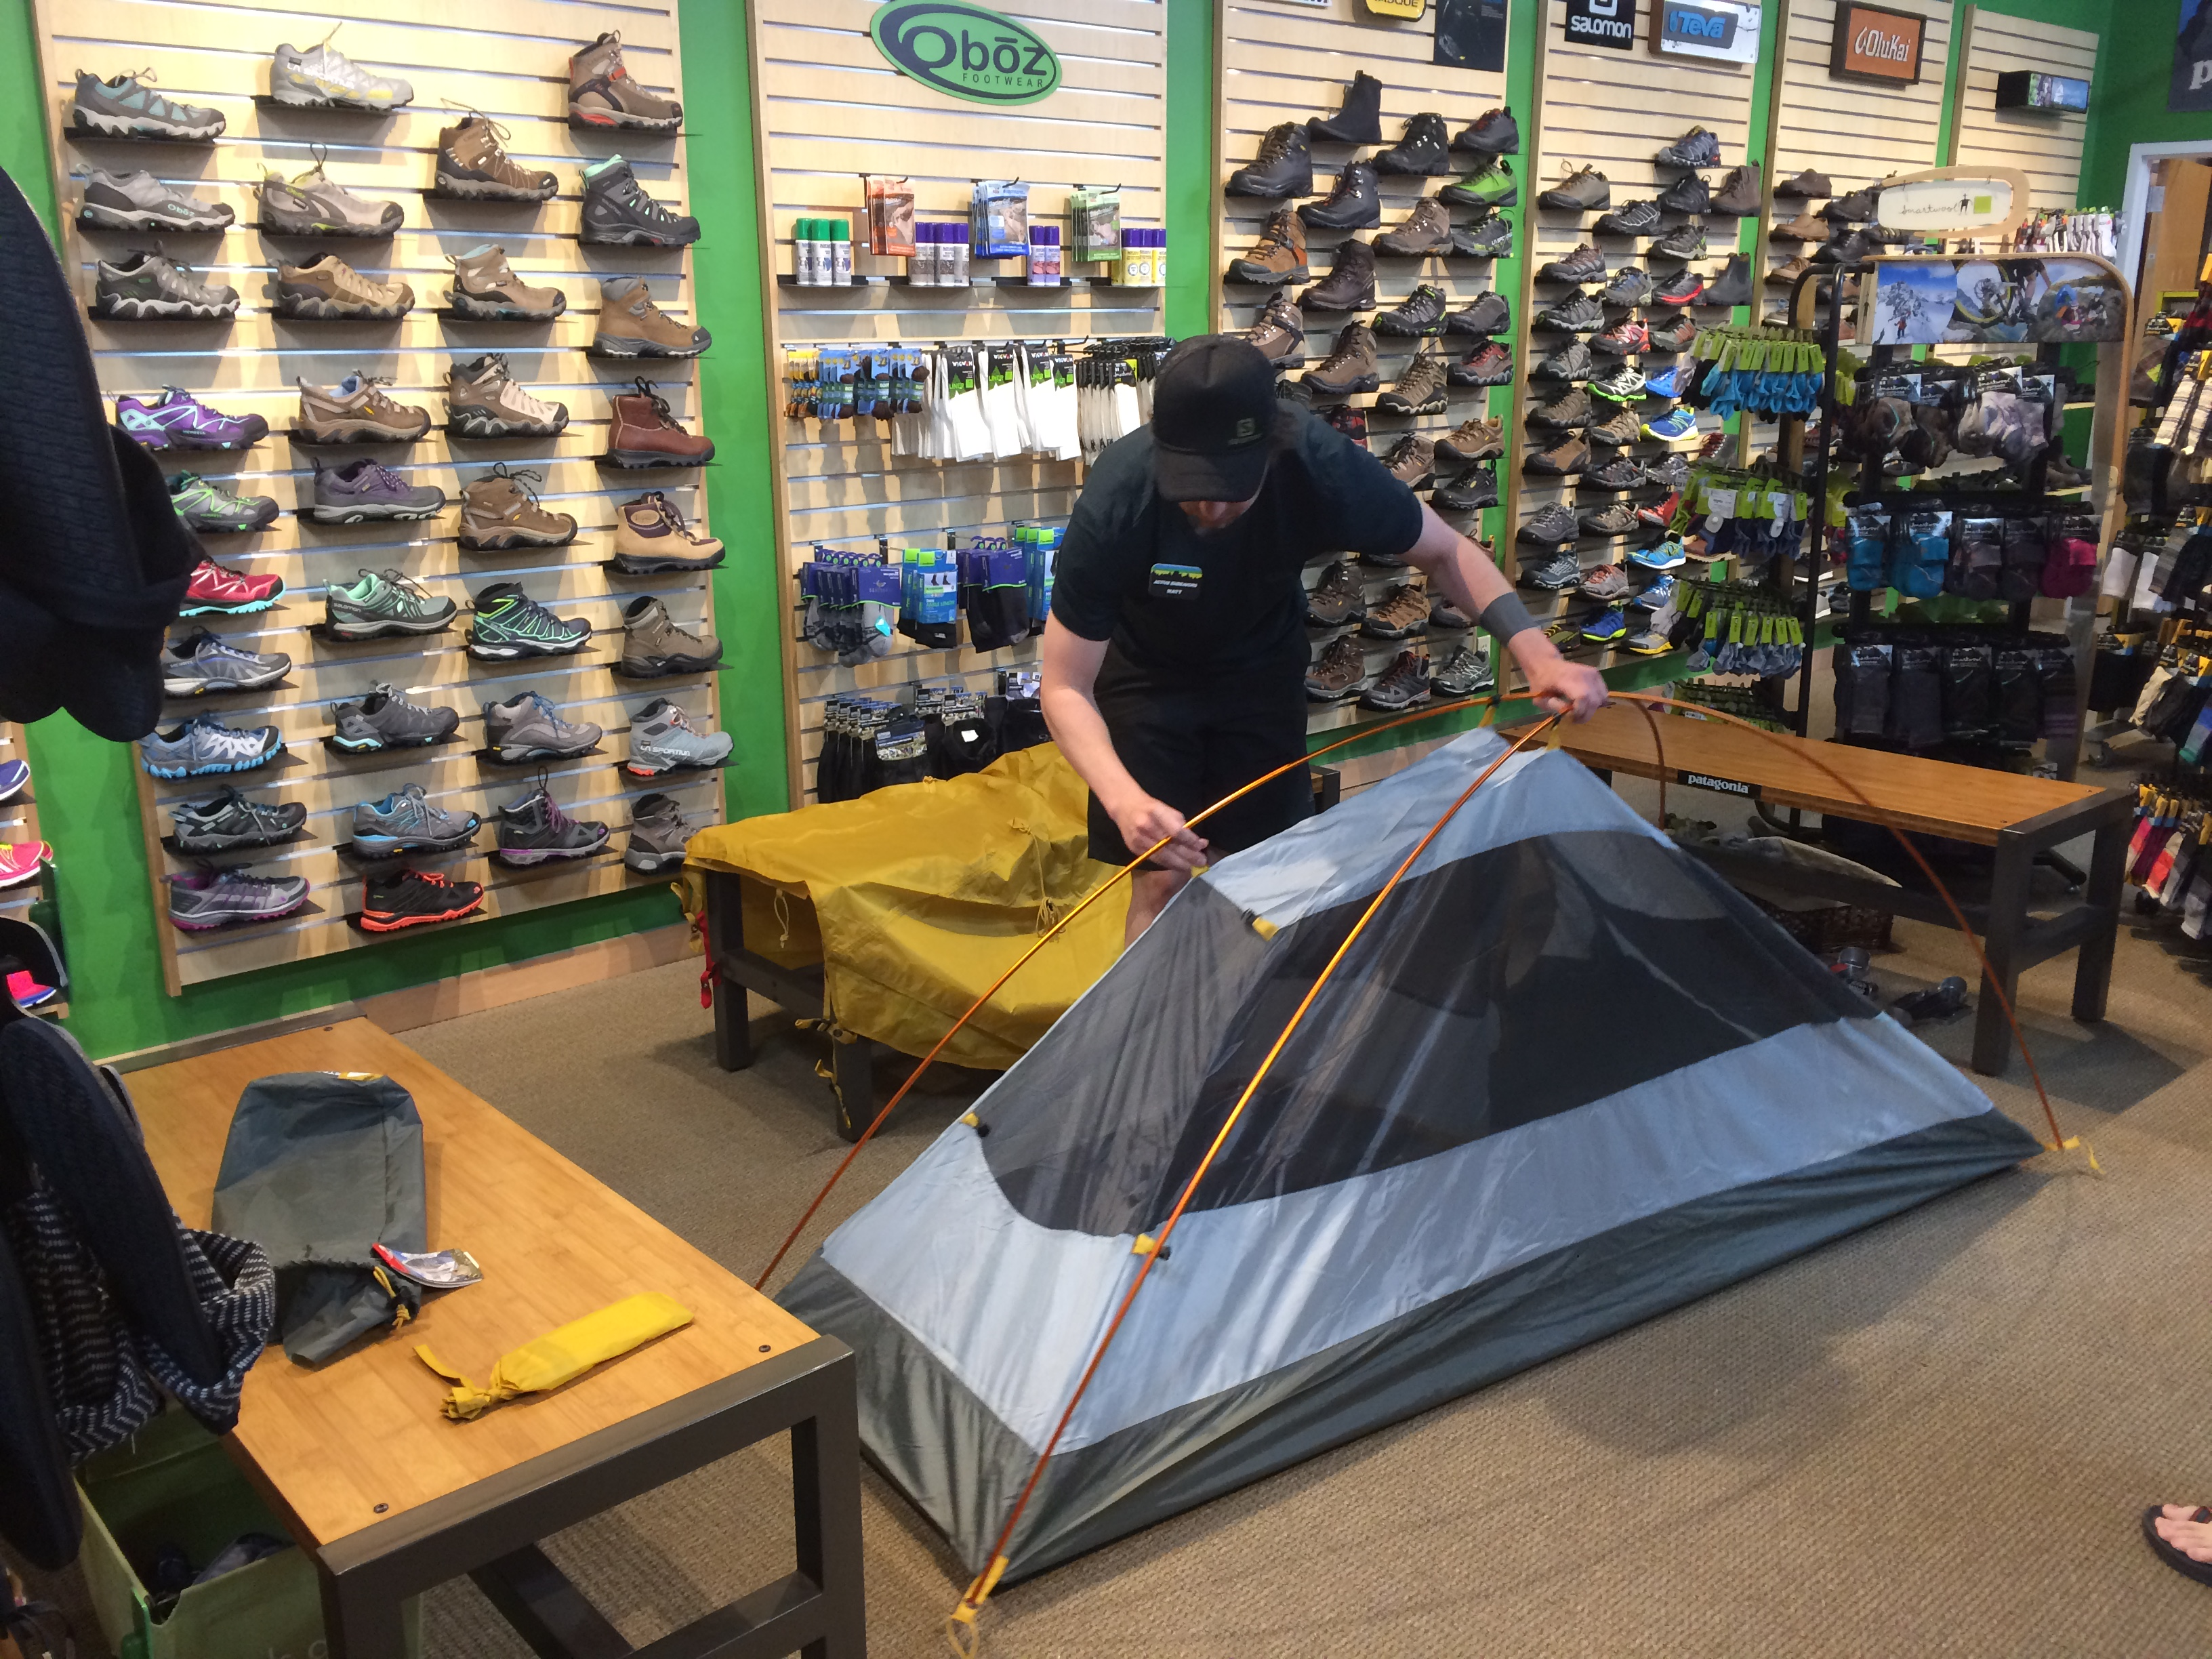 Tent Storage & Active Crew Tips: Proper Tent Care - Active Endeavors: Outdoor ...